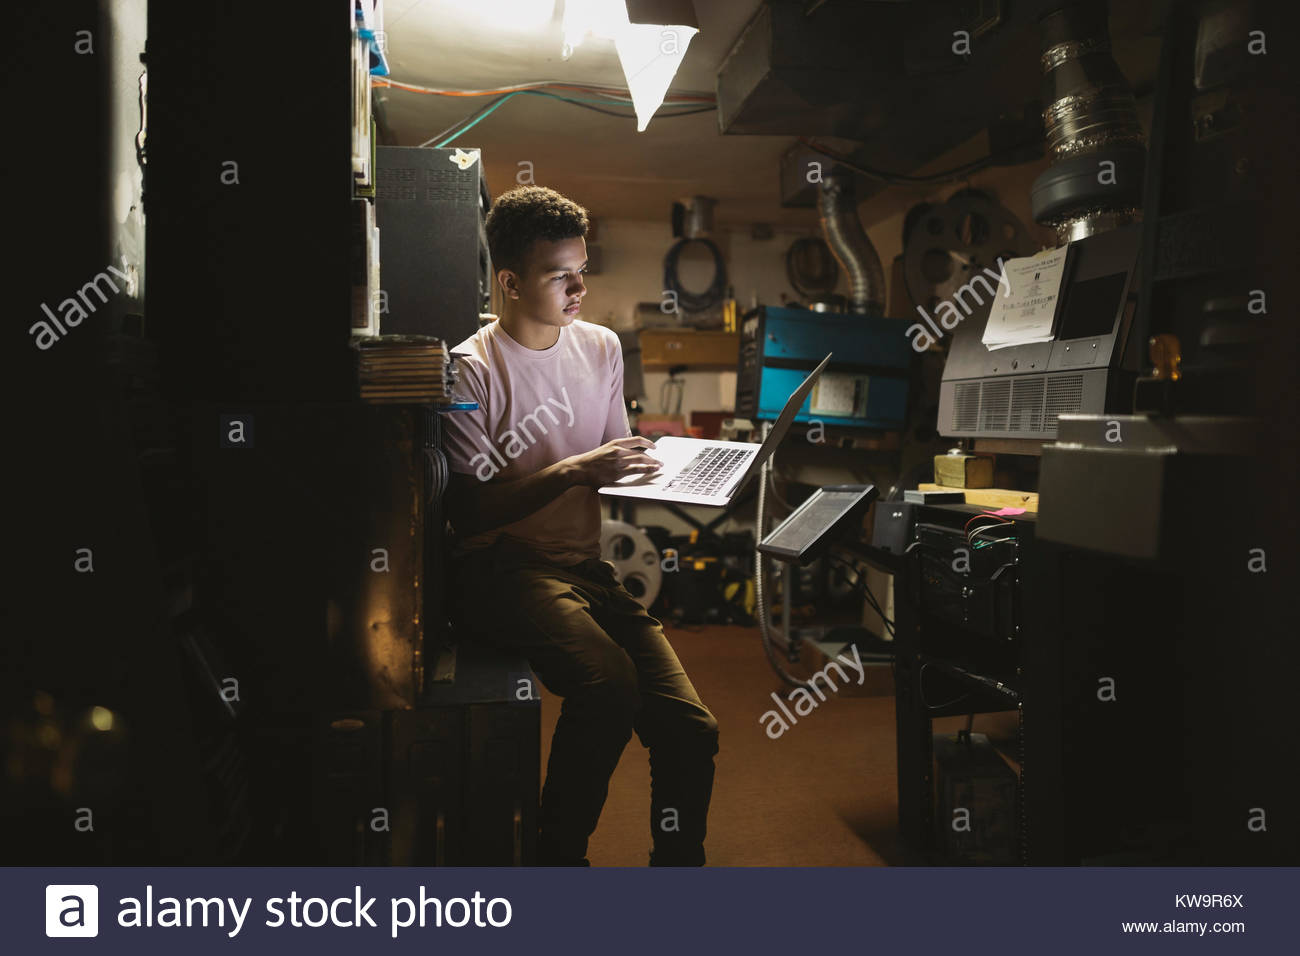 Mixed race tween boy projectionist using laptop in movie theater - Stock Image